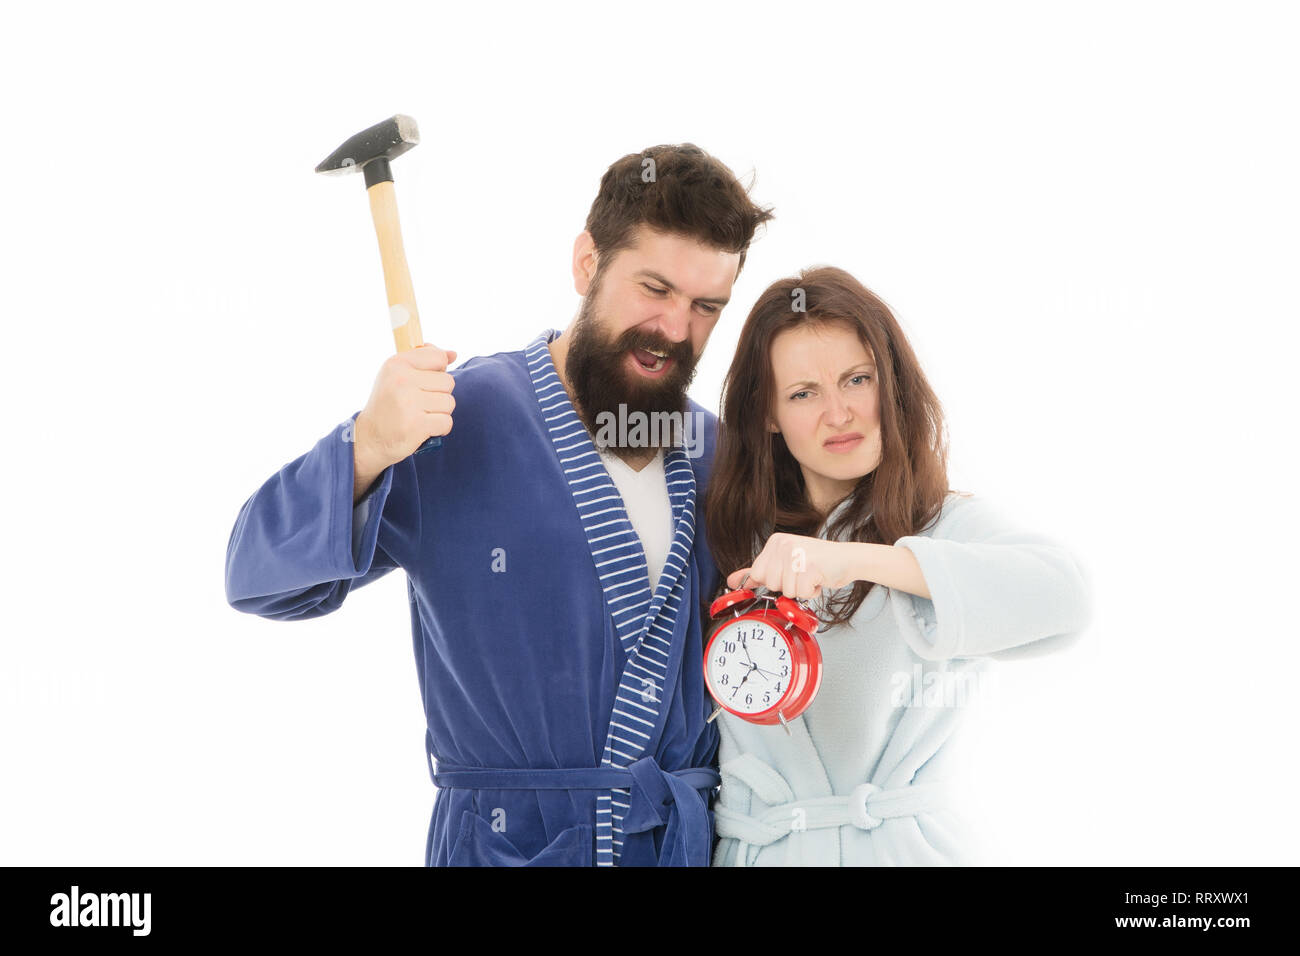 Morning tricks to set yourself up for much less stressful day. Lets get rid of this annoying alarm clock. Couple in bathrobes going to destroy alarm clock. Man hammer beat alarm clock. Hateful sound. - Stock Image